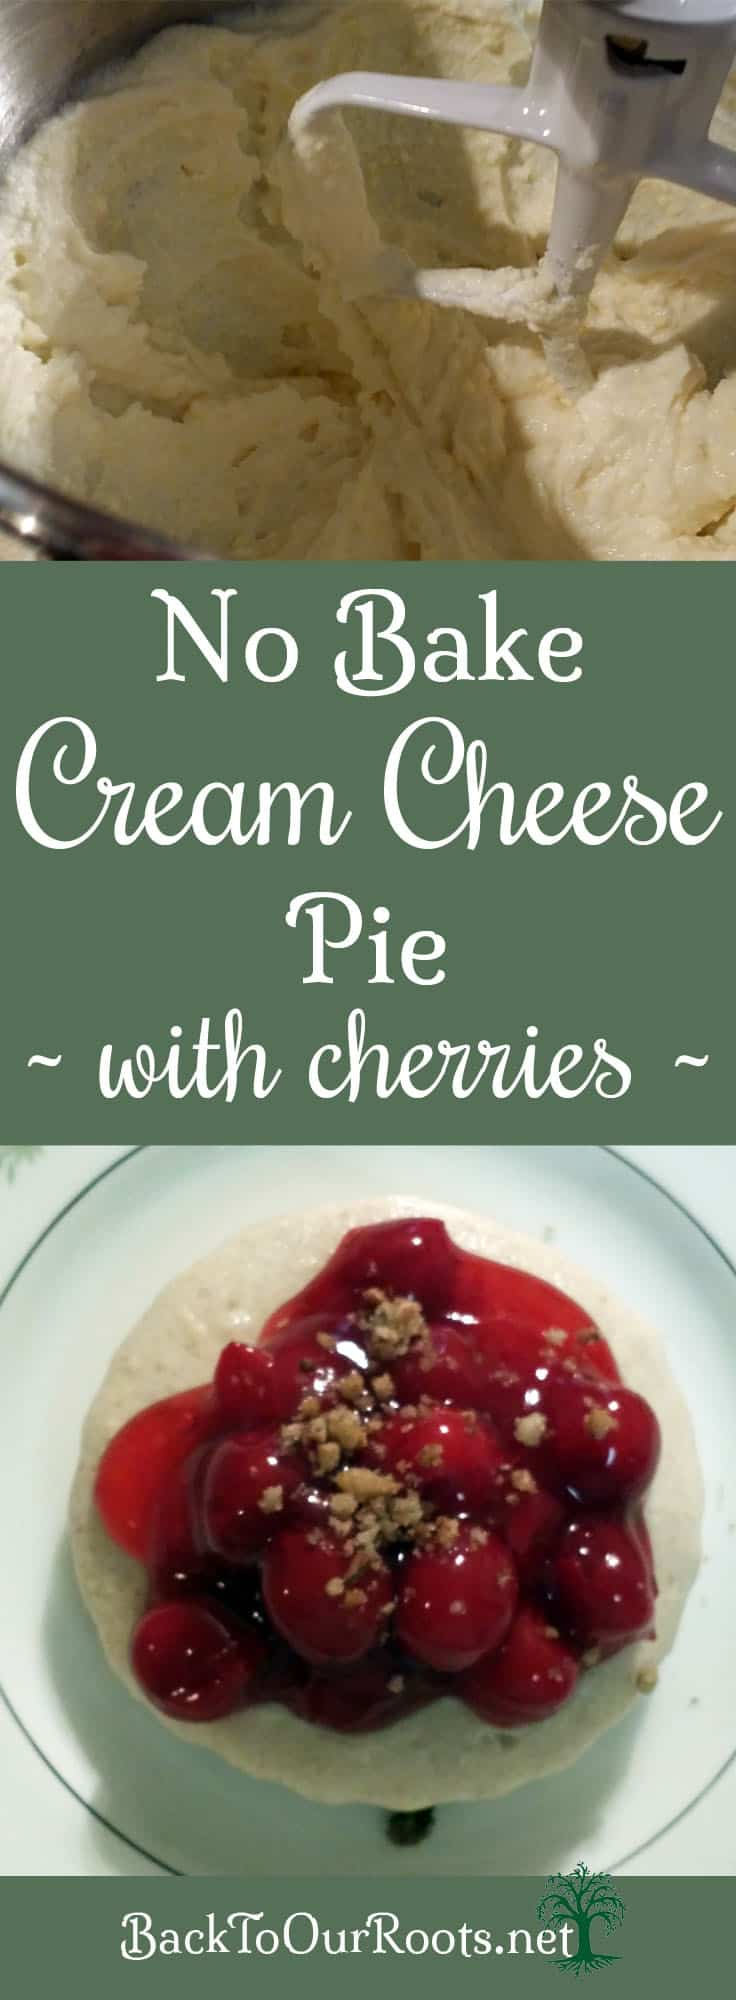 No Bake Cherry Cream Cheese Pie